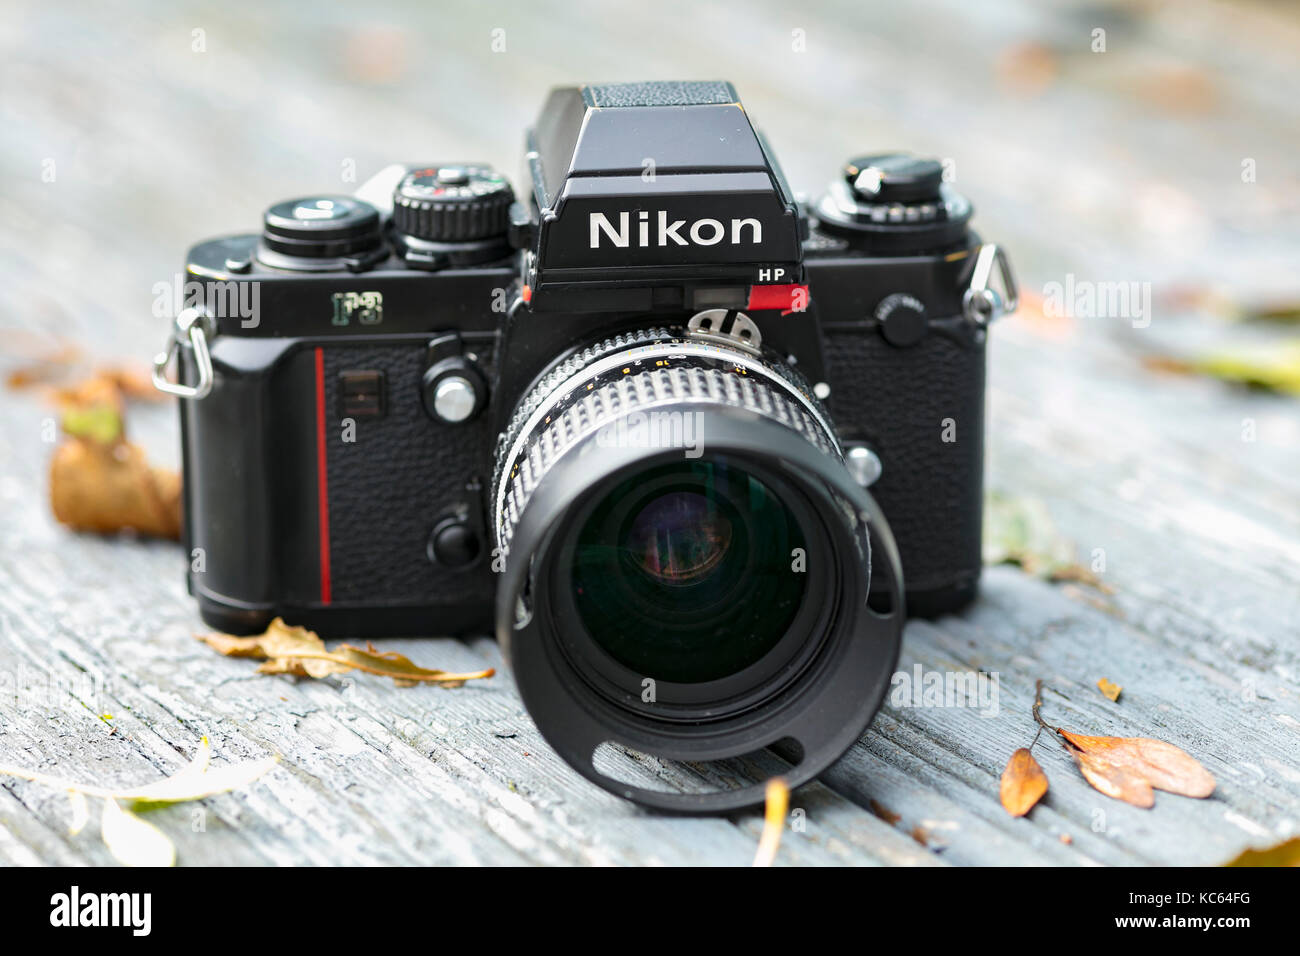 Nikon F3 single lens reflex 35mm professional film camera, First launched in 1980 and remained in production until - Stock Image